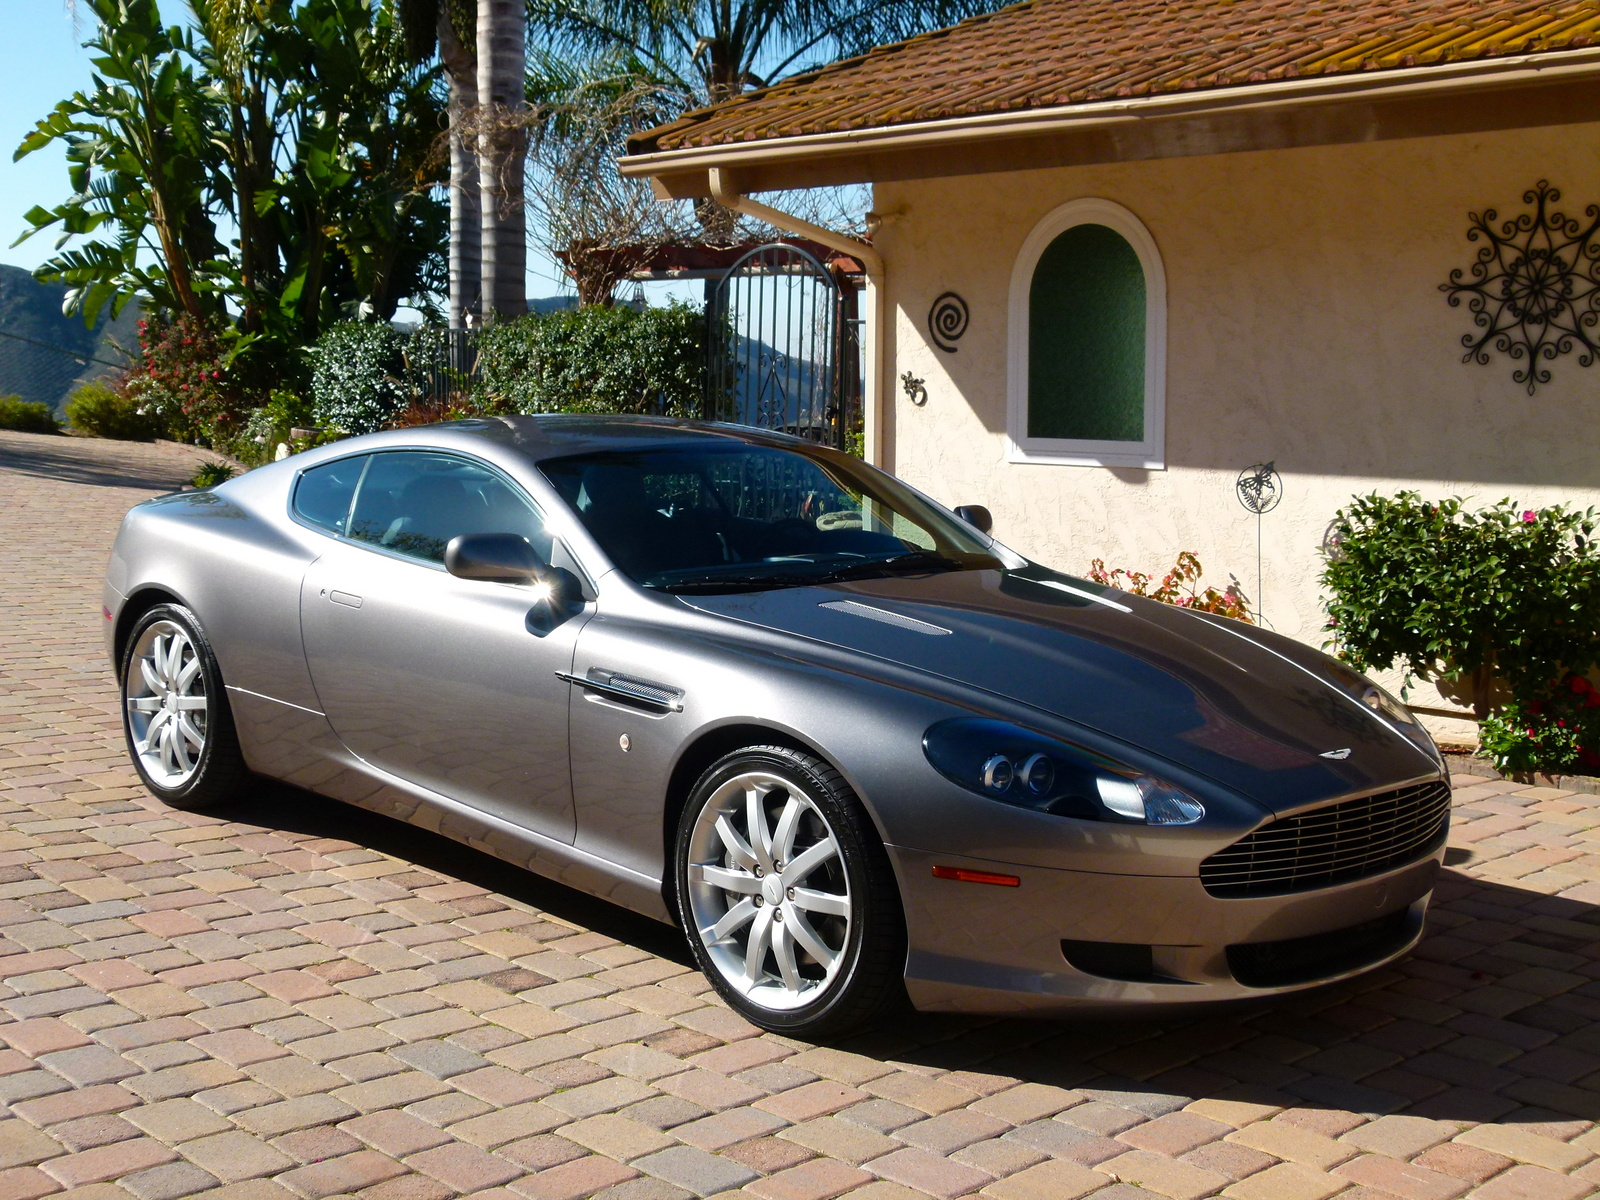 aston martin db9 coupe 2005 images #6